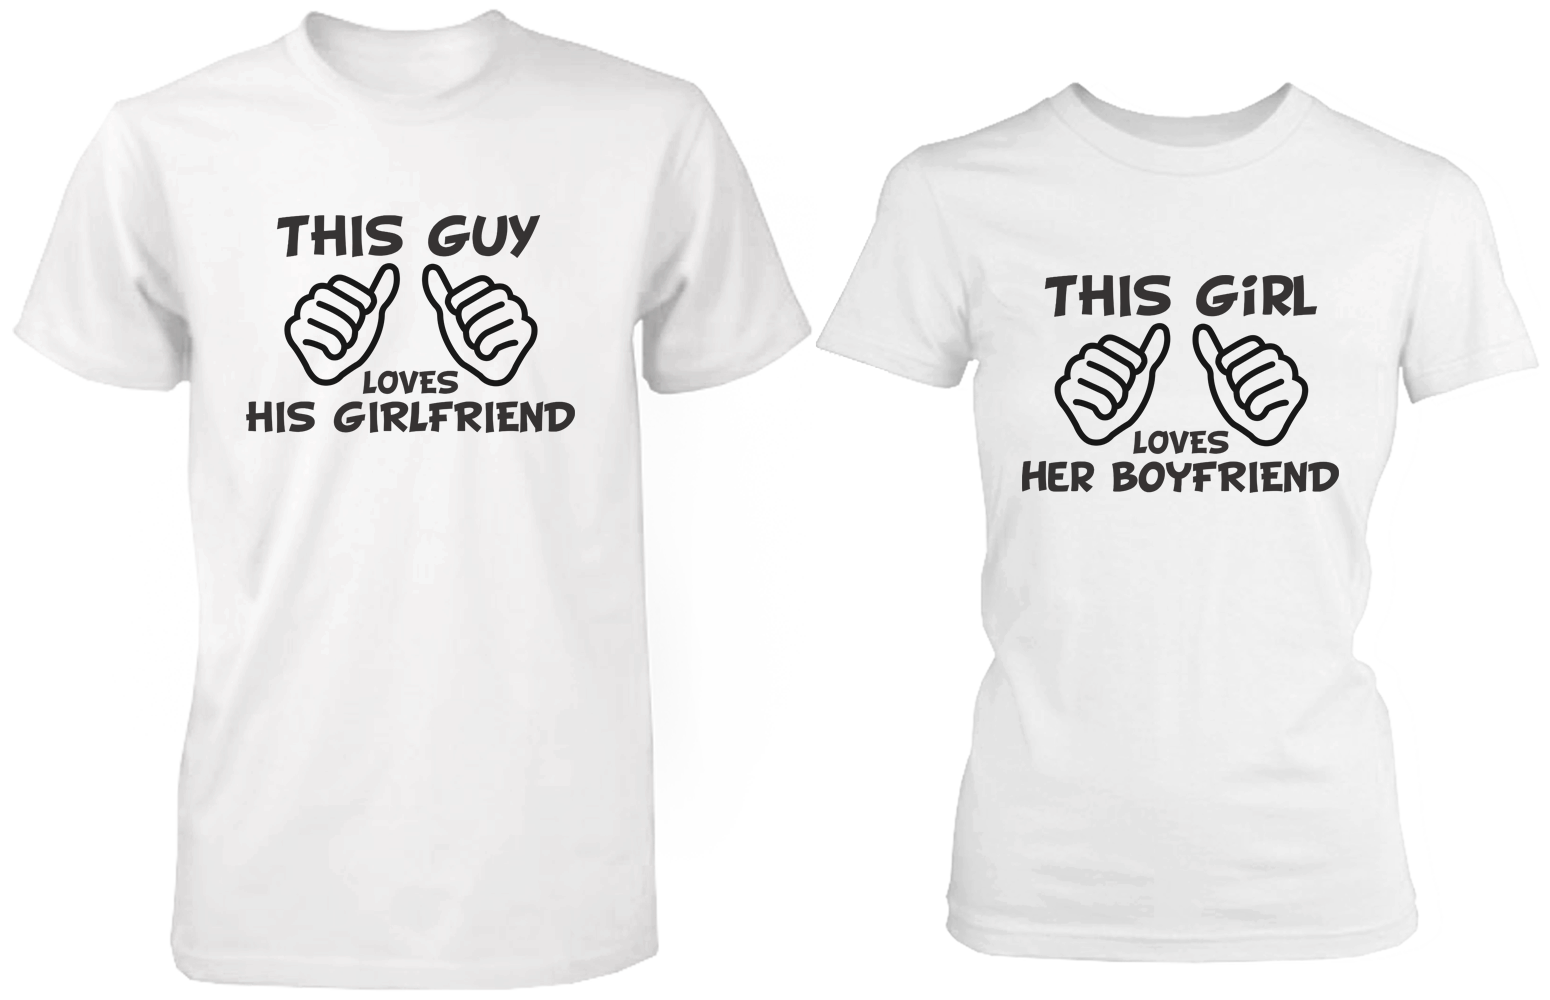 914d61d2f5 This Guy Loves His Girlfriend & This Girl Loves Her Boyfriend White  Matching Couple Shirts